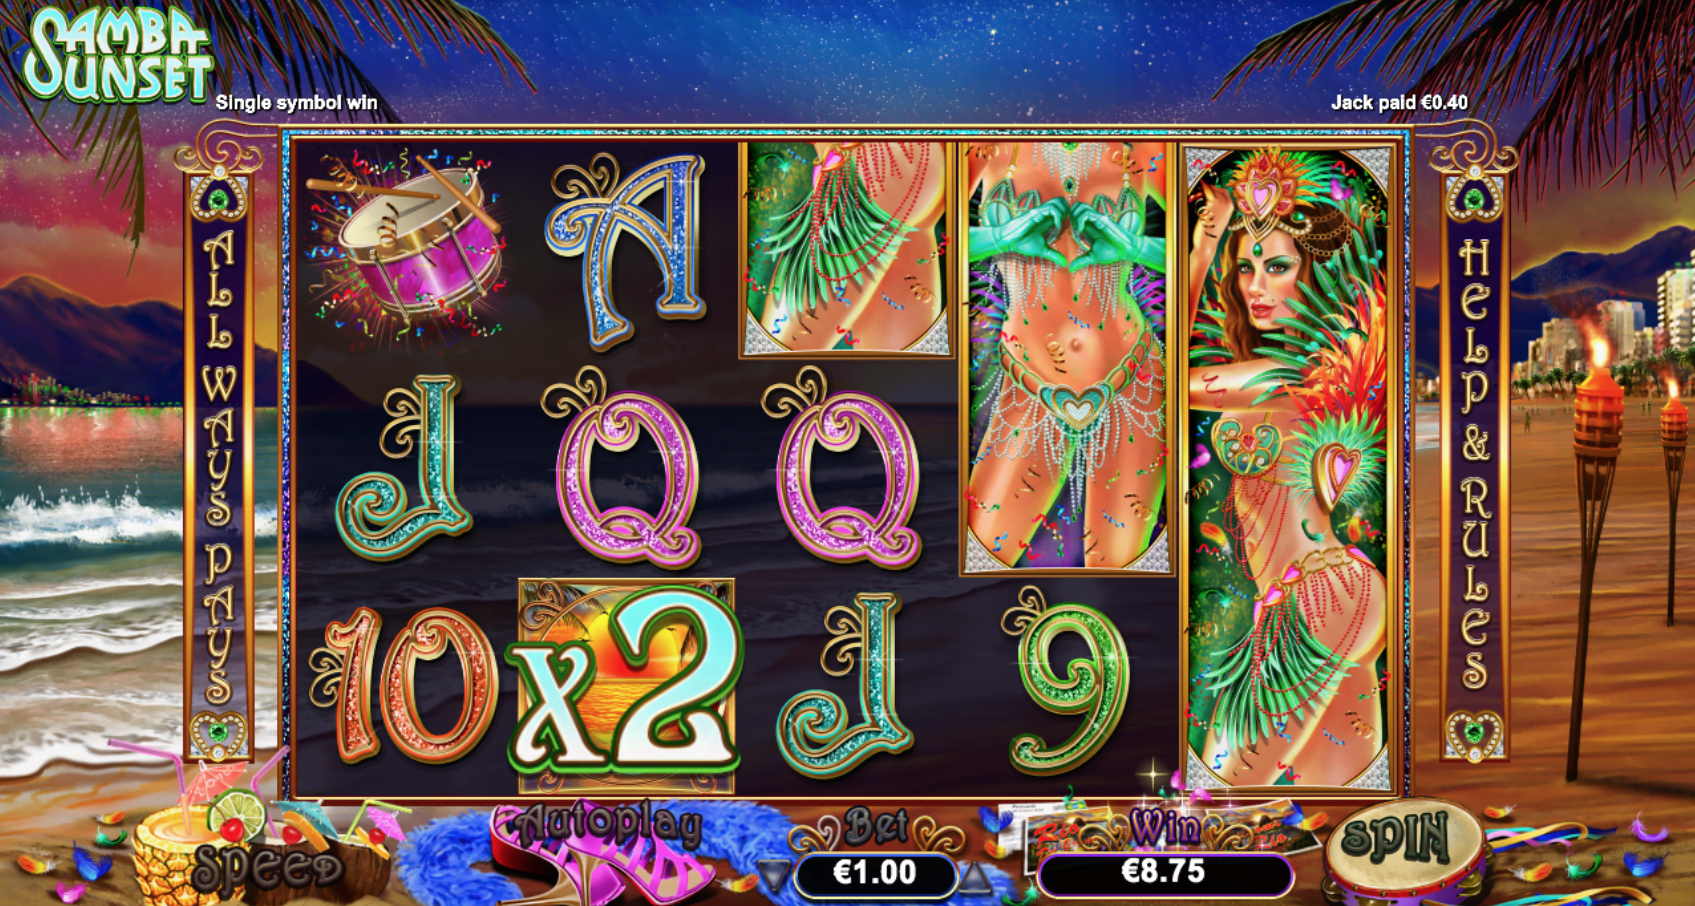 samba sunset free spins